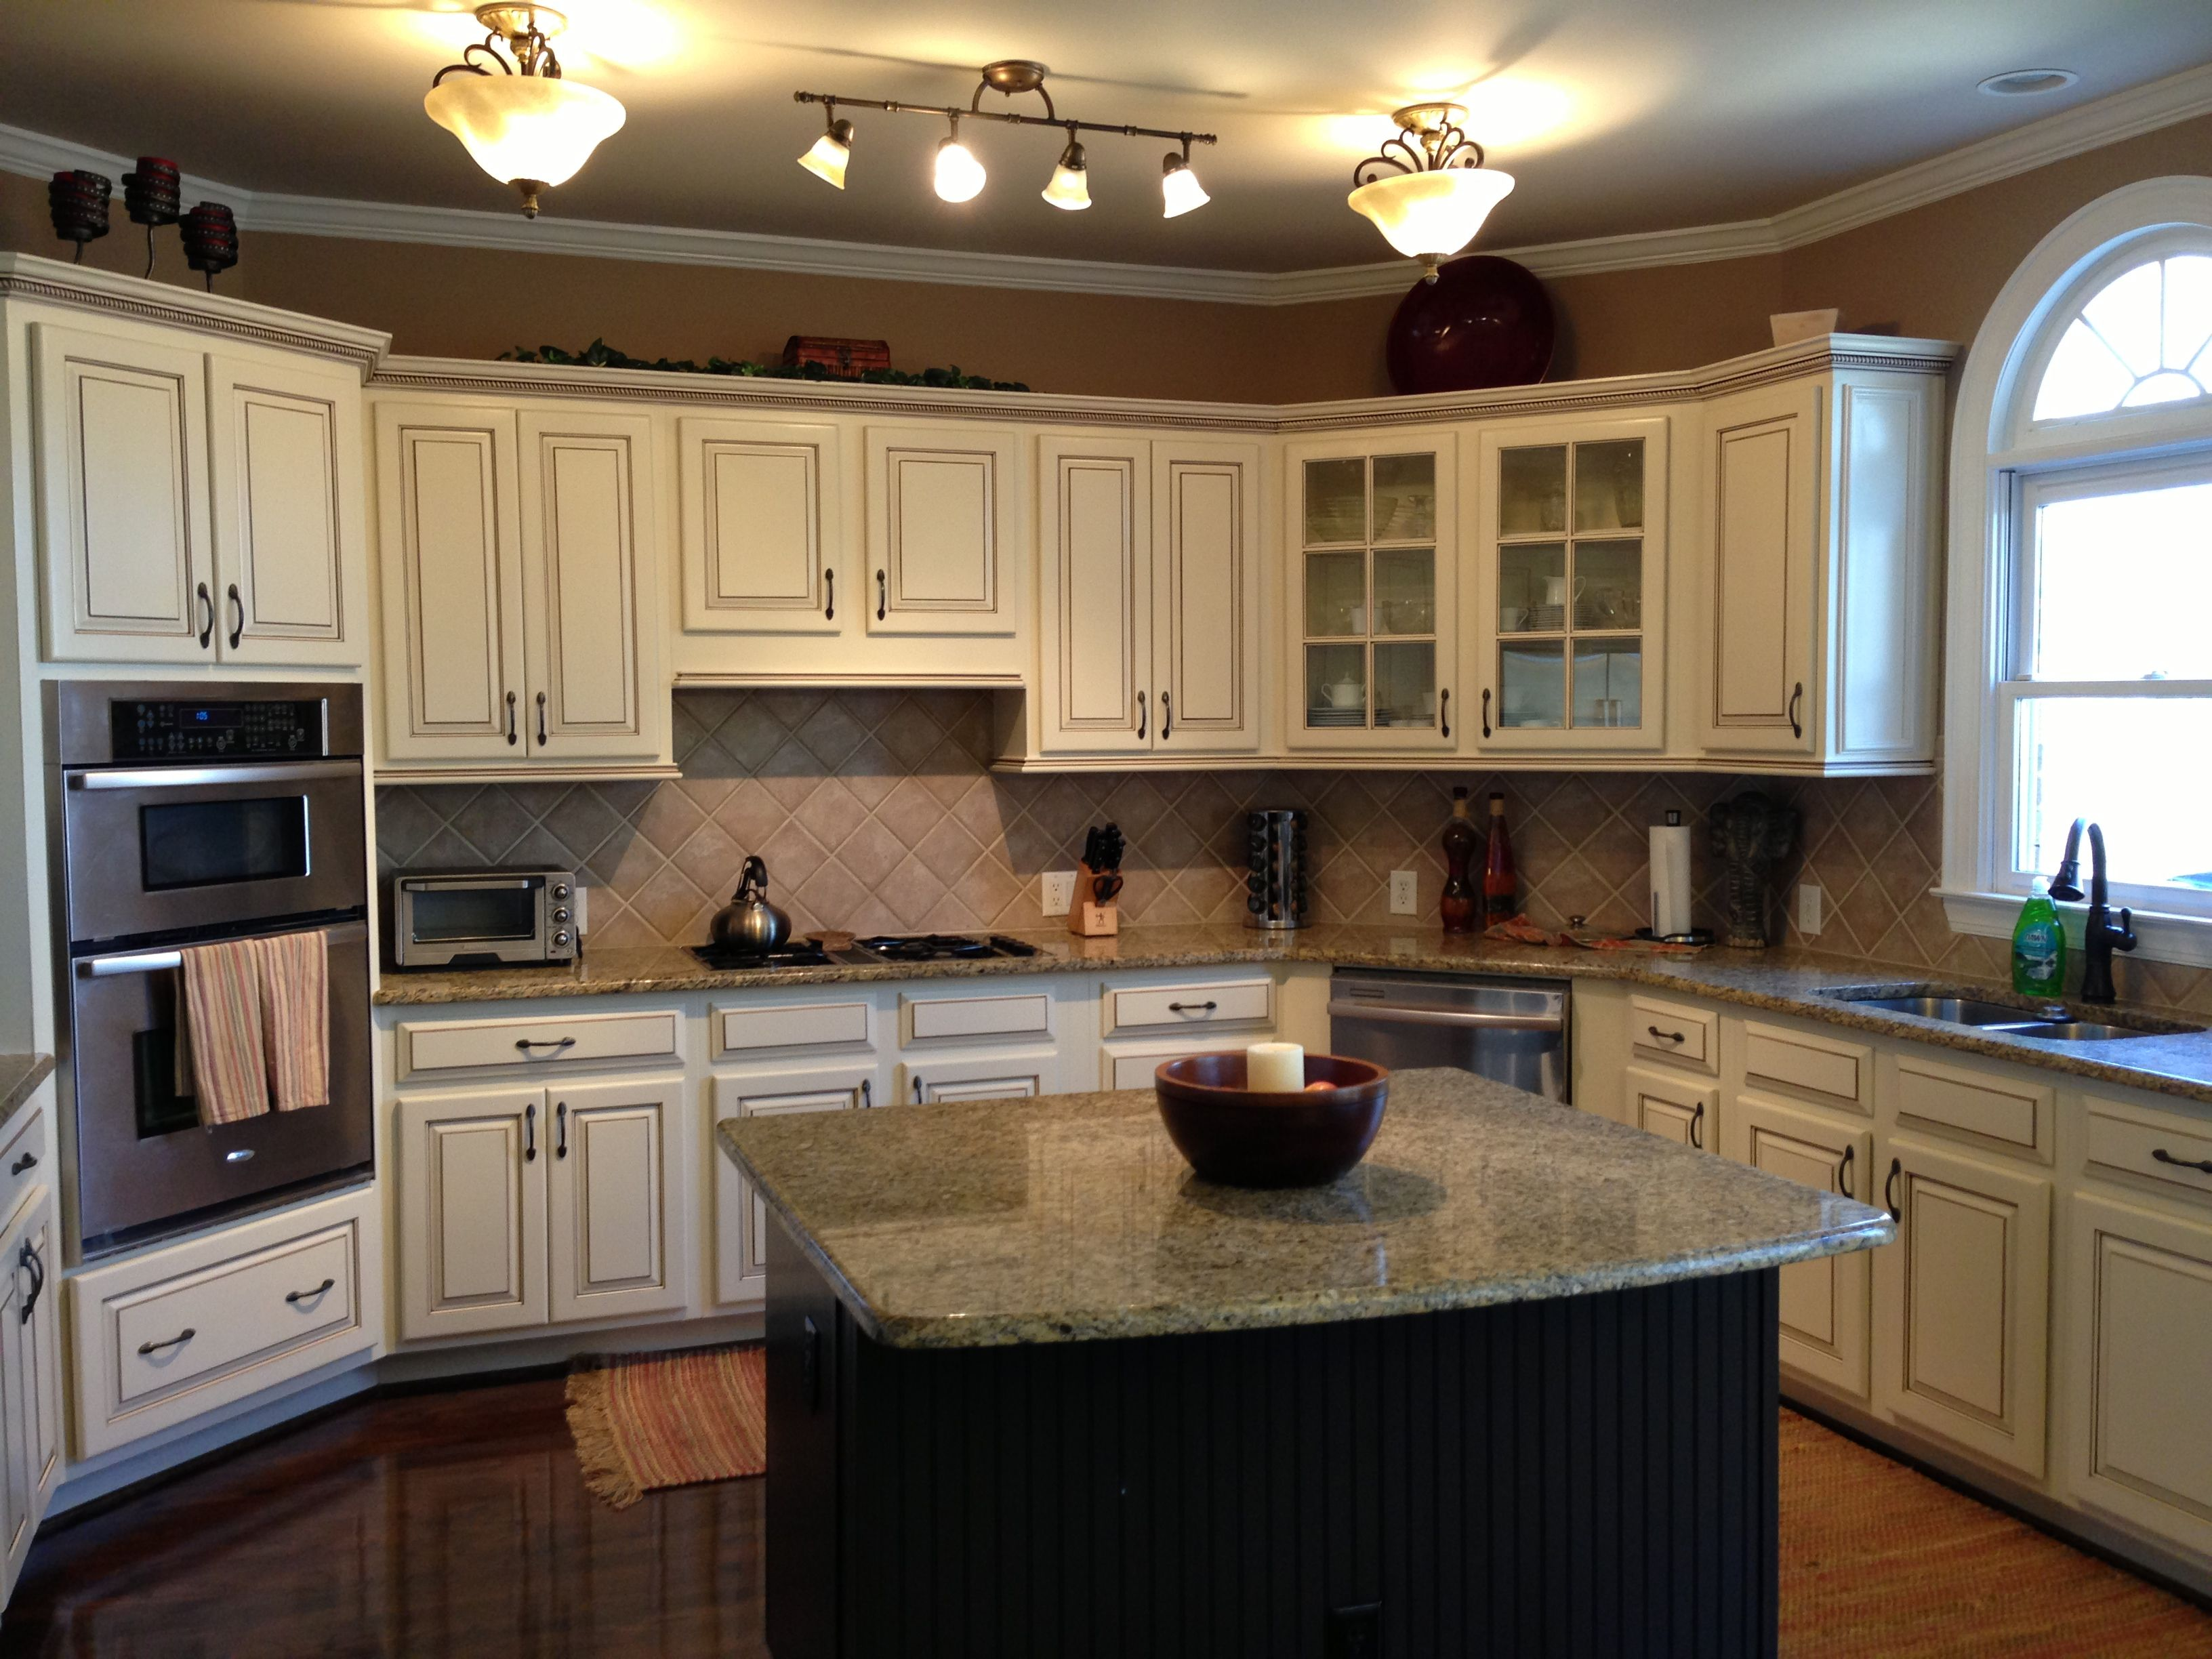 My dream kitchen at last painted maple cabinets antique for Dark brown painted kitchen cabinets